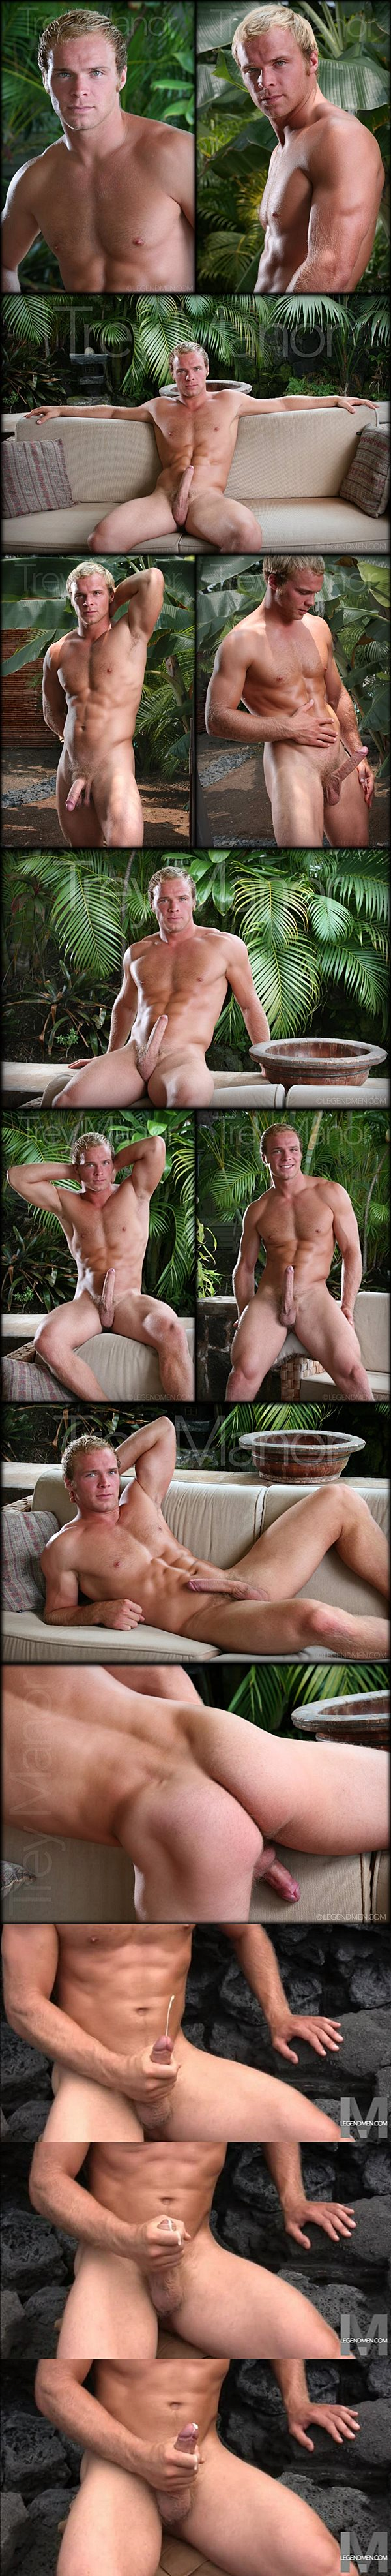 Handsome blond jock Trey Manor shows his flawless muscle body and shoots his hot wad at Legendmen